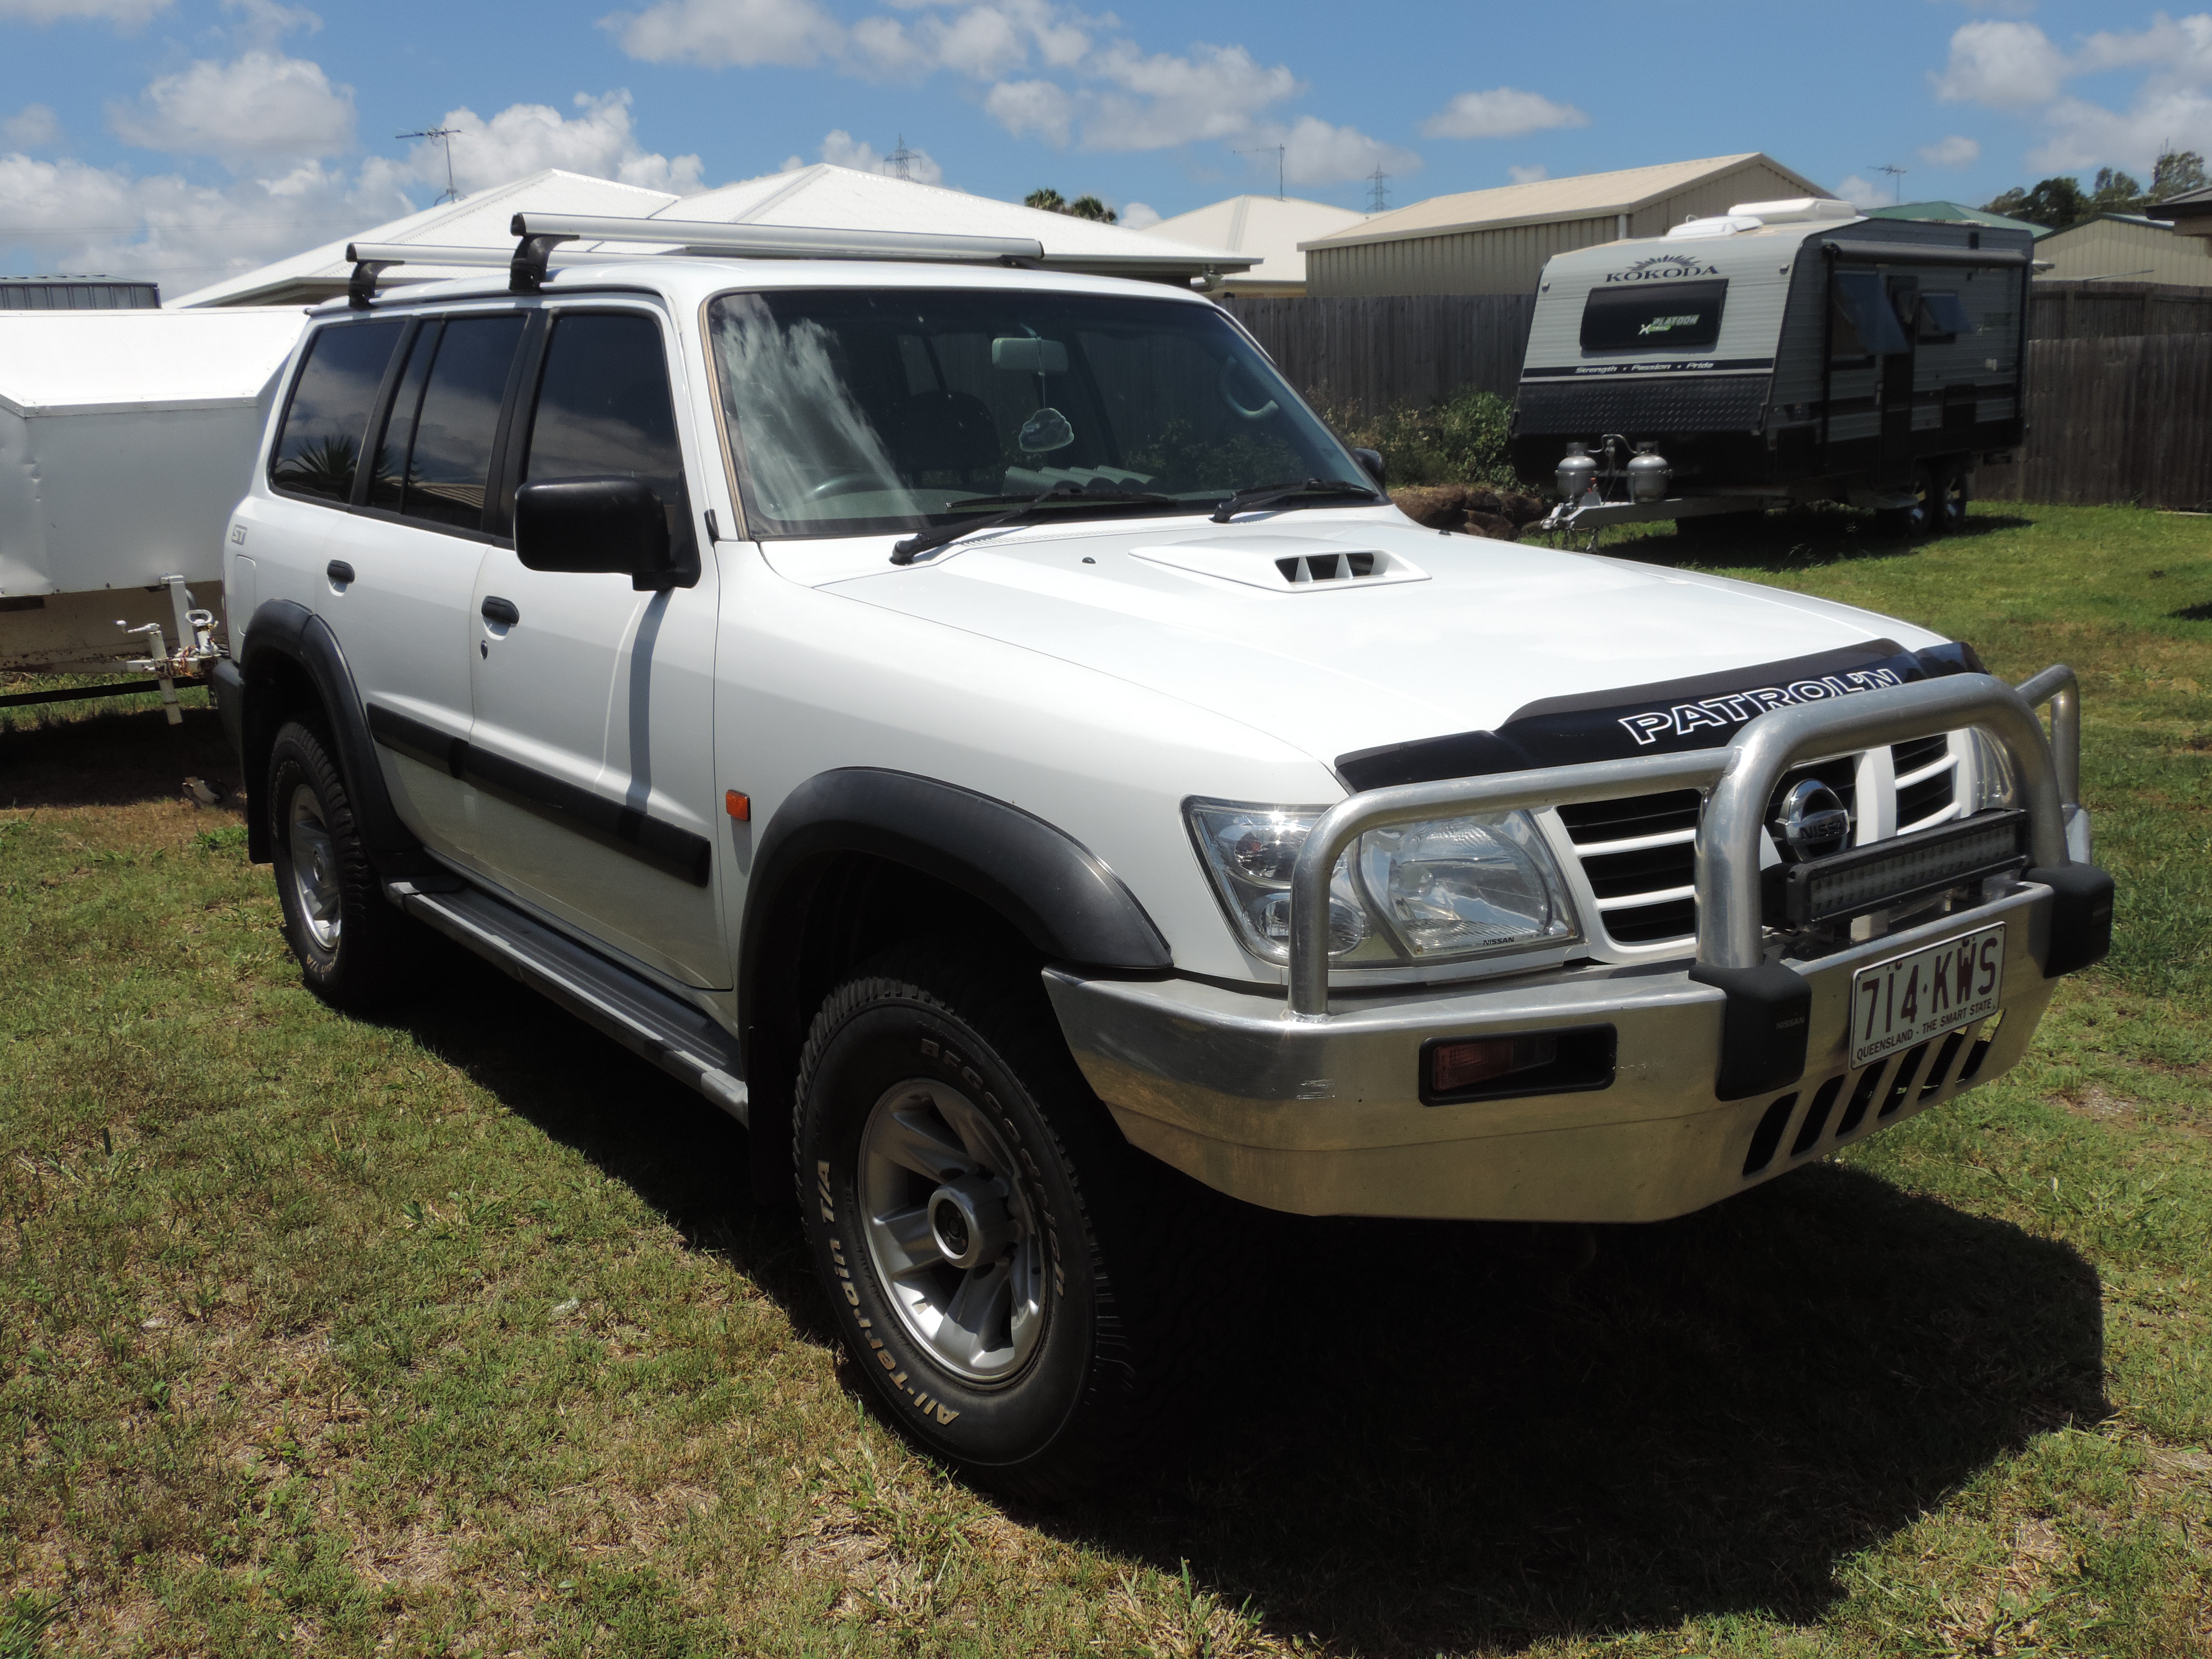 2003 nissan patrol st 4x4 gu iii car sales qld gladstone 2600602. Black Bedroom Furniture Sets. Home Design Ideas